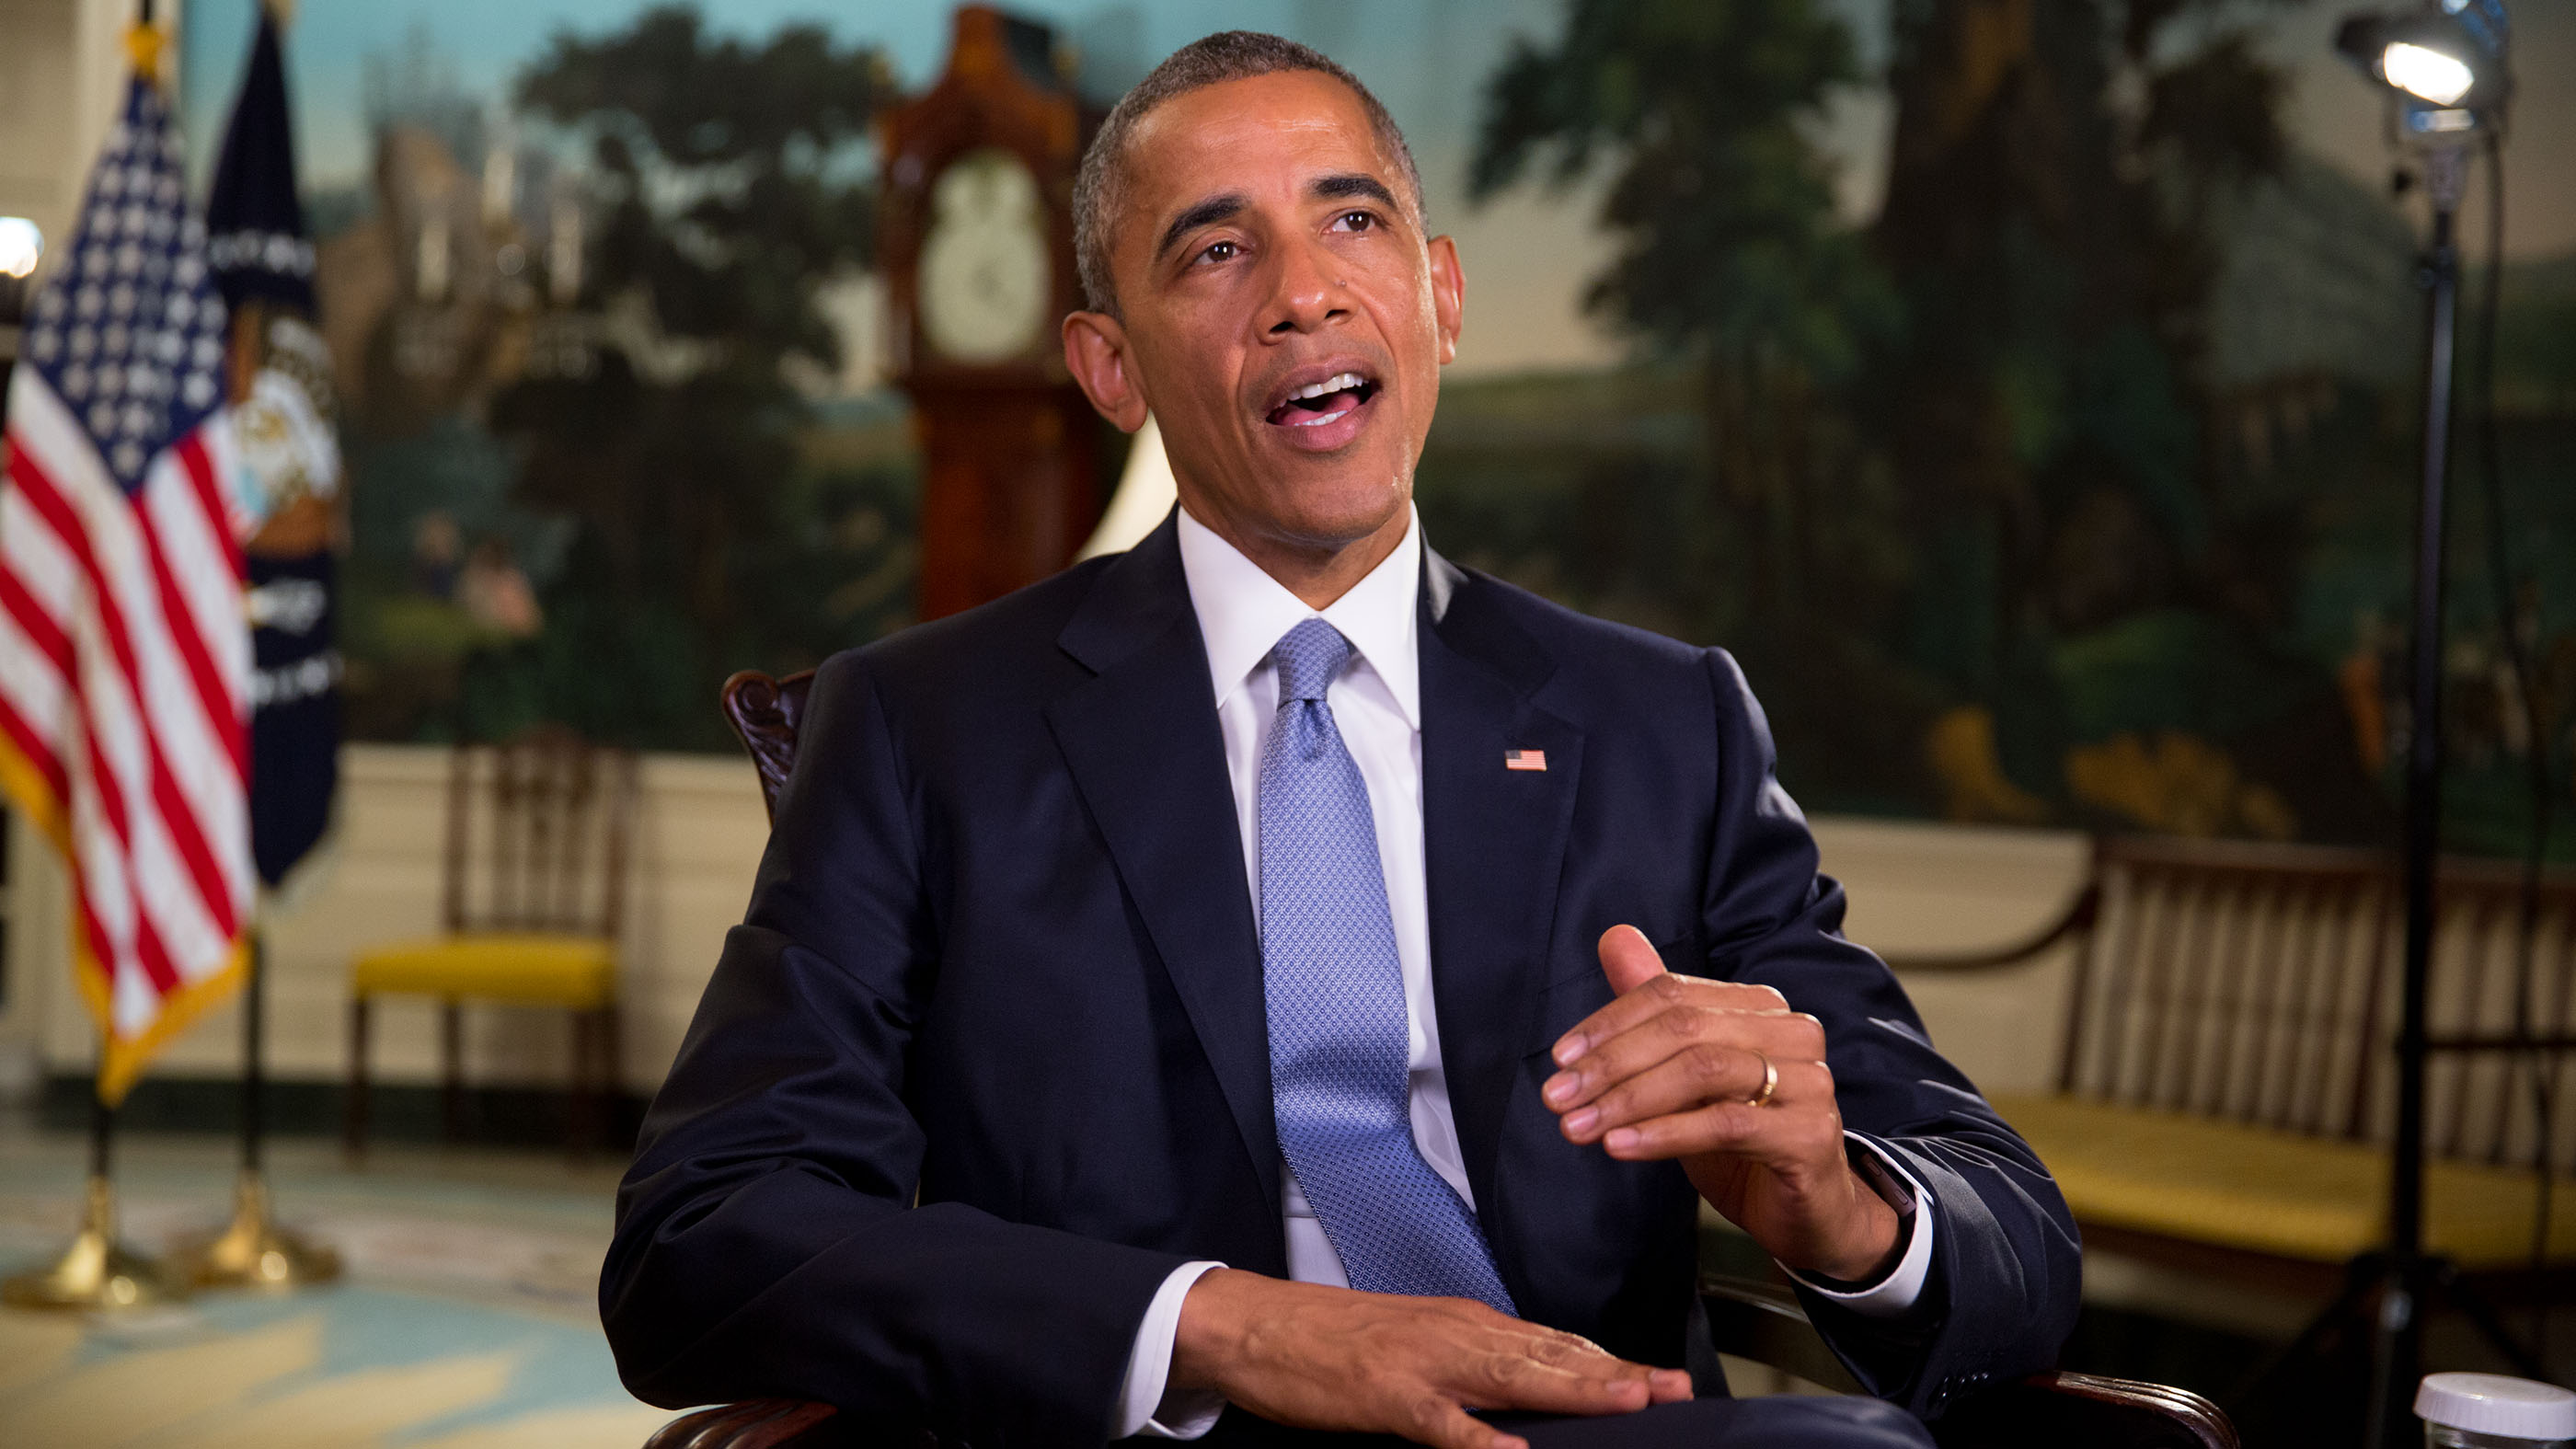 President Obama Delivers the Weekly Address on TAA